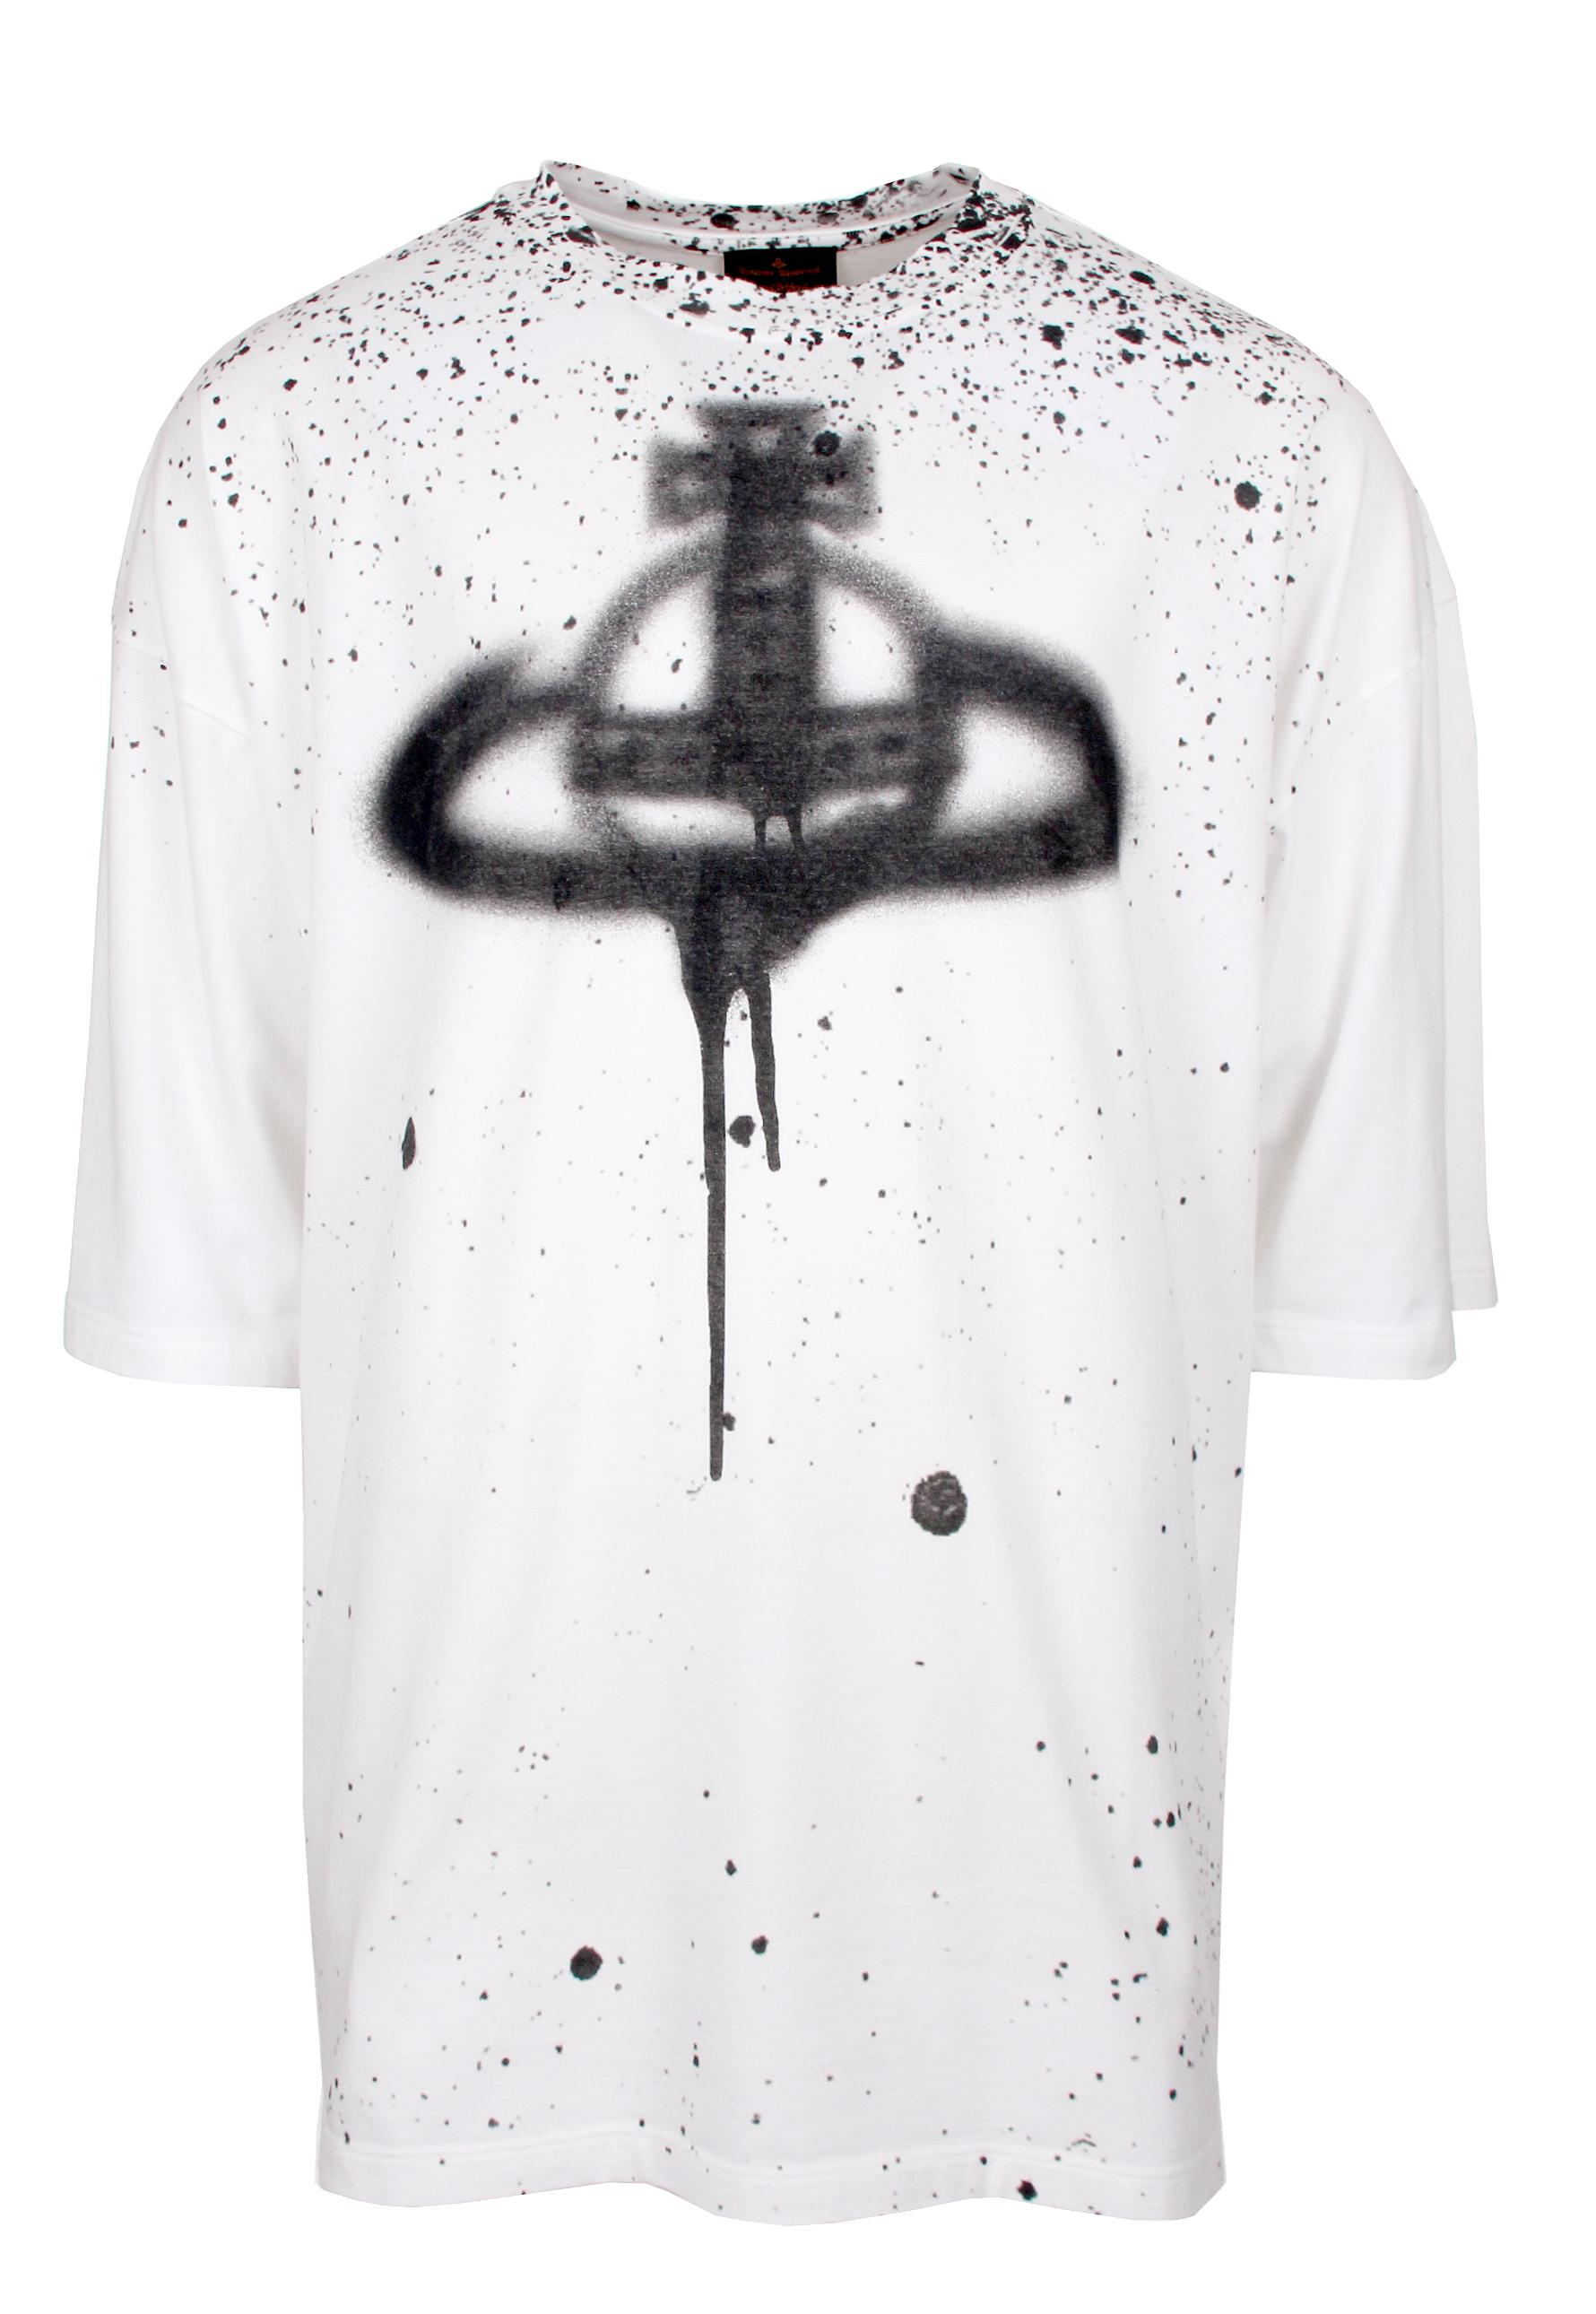 Vivienne Westwood Anglomania Spray Orb Baggy T-Shirt White -3916